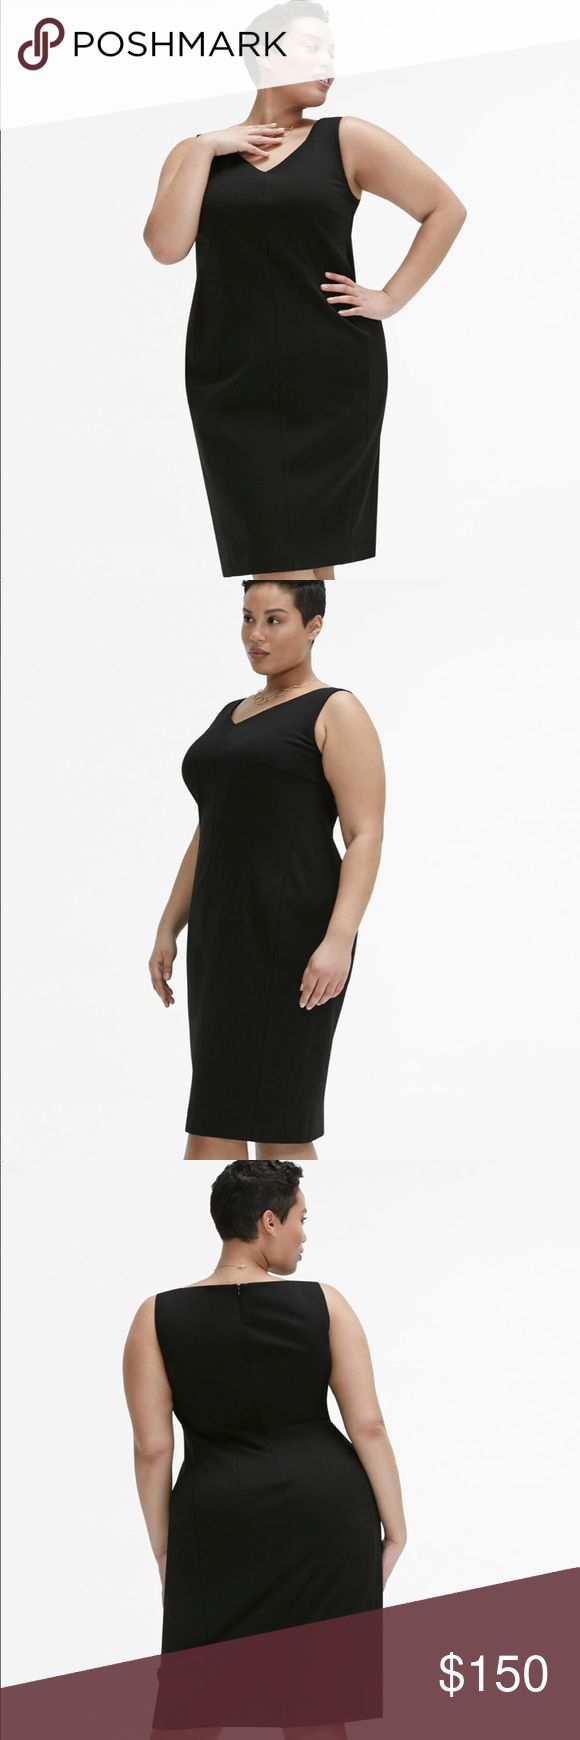 MM LaFleur Rachel Dress This versatile sheath packs a punch. Strategically placed seams create a smooth silhouette that looks sharp from morning 'til night. Wear it under a jacket for meetings, or on its own for post-work cocktails.  Fit Tips: Hips-friendly, Tall-friendly  65% Viscose, 30% Nylon, 5% Elastane Dry clean only. Iron if needed. MM Lafleur Dresses Midi